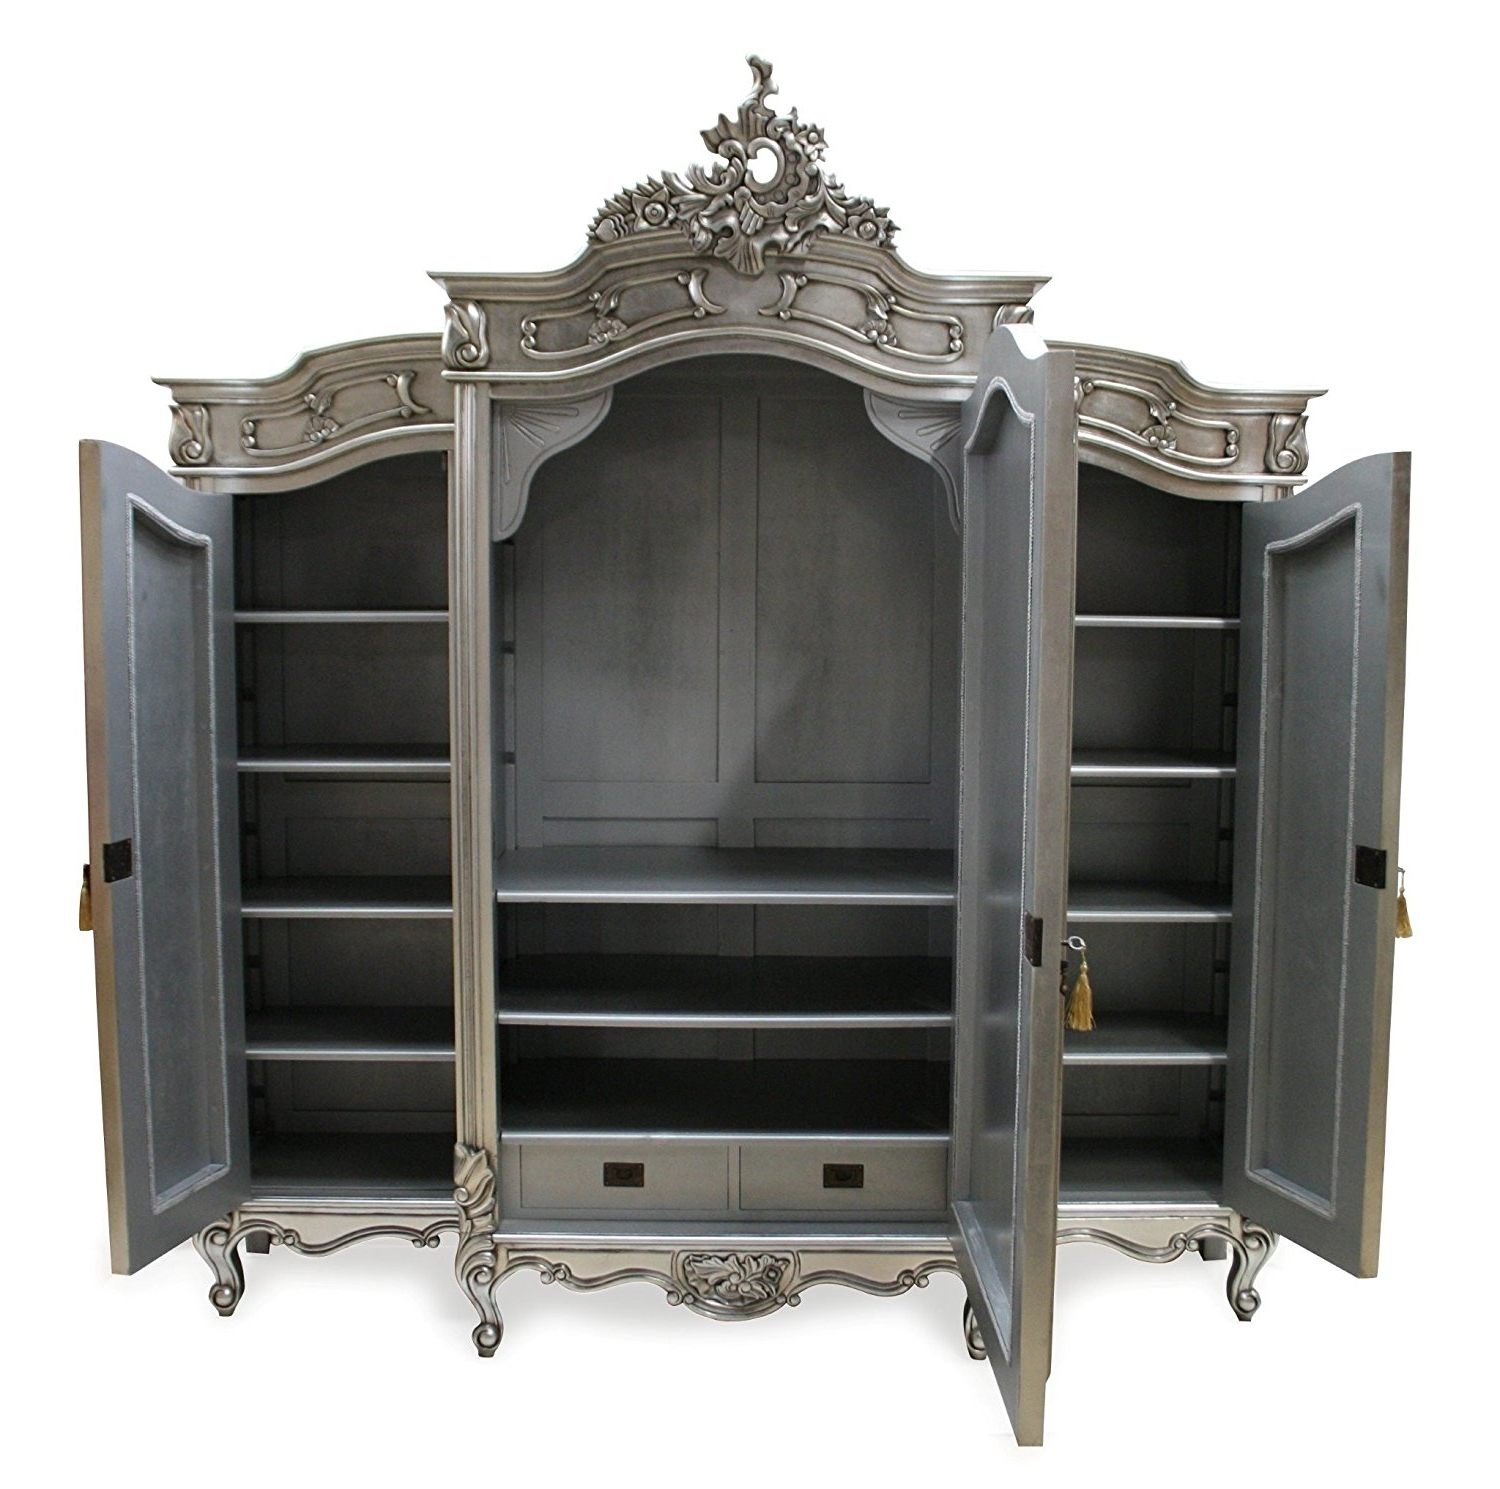 Widely Used Silver Wardrobes With French Style Furniture 3 Door Mirrored Wardrobe Silver: Amazon (View 15 of 15)